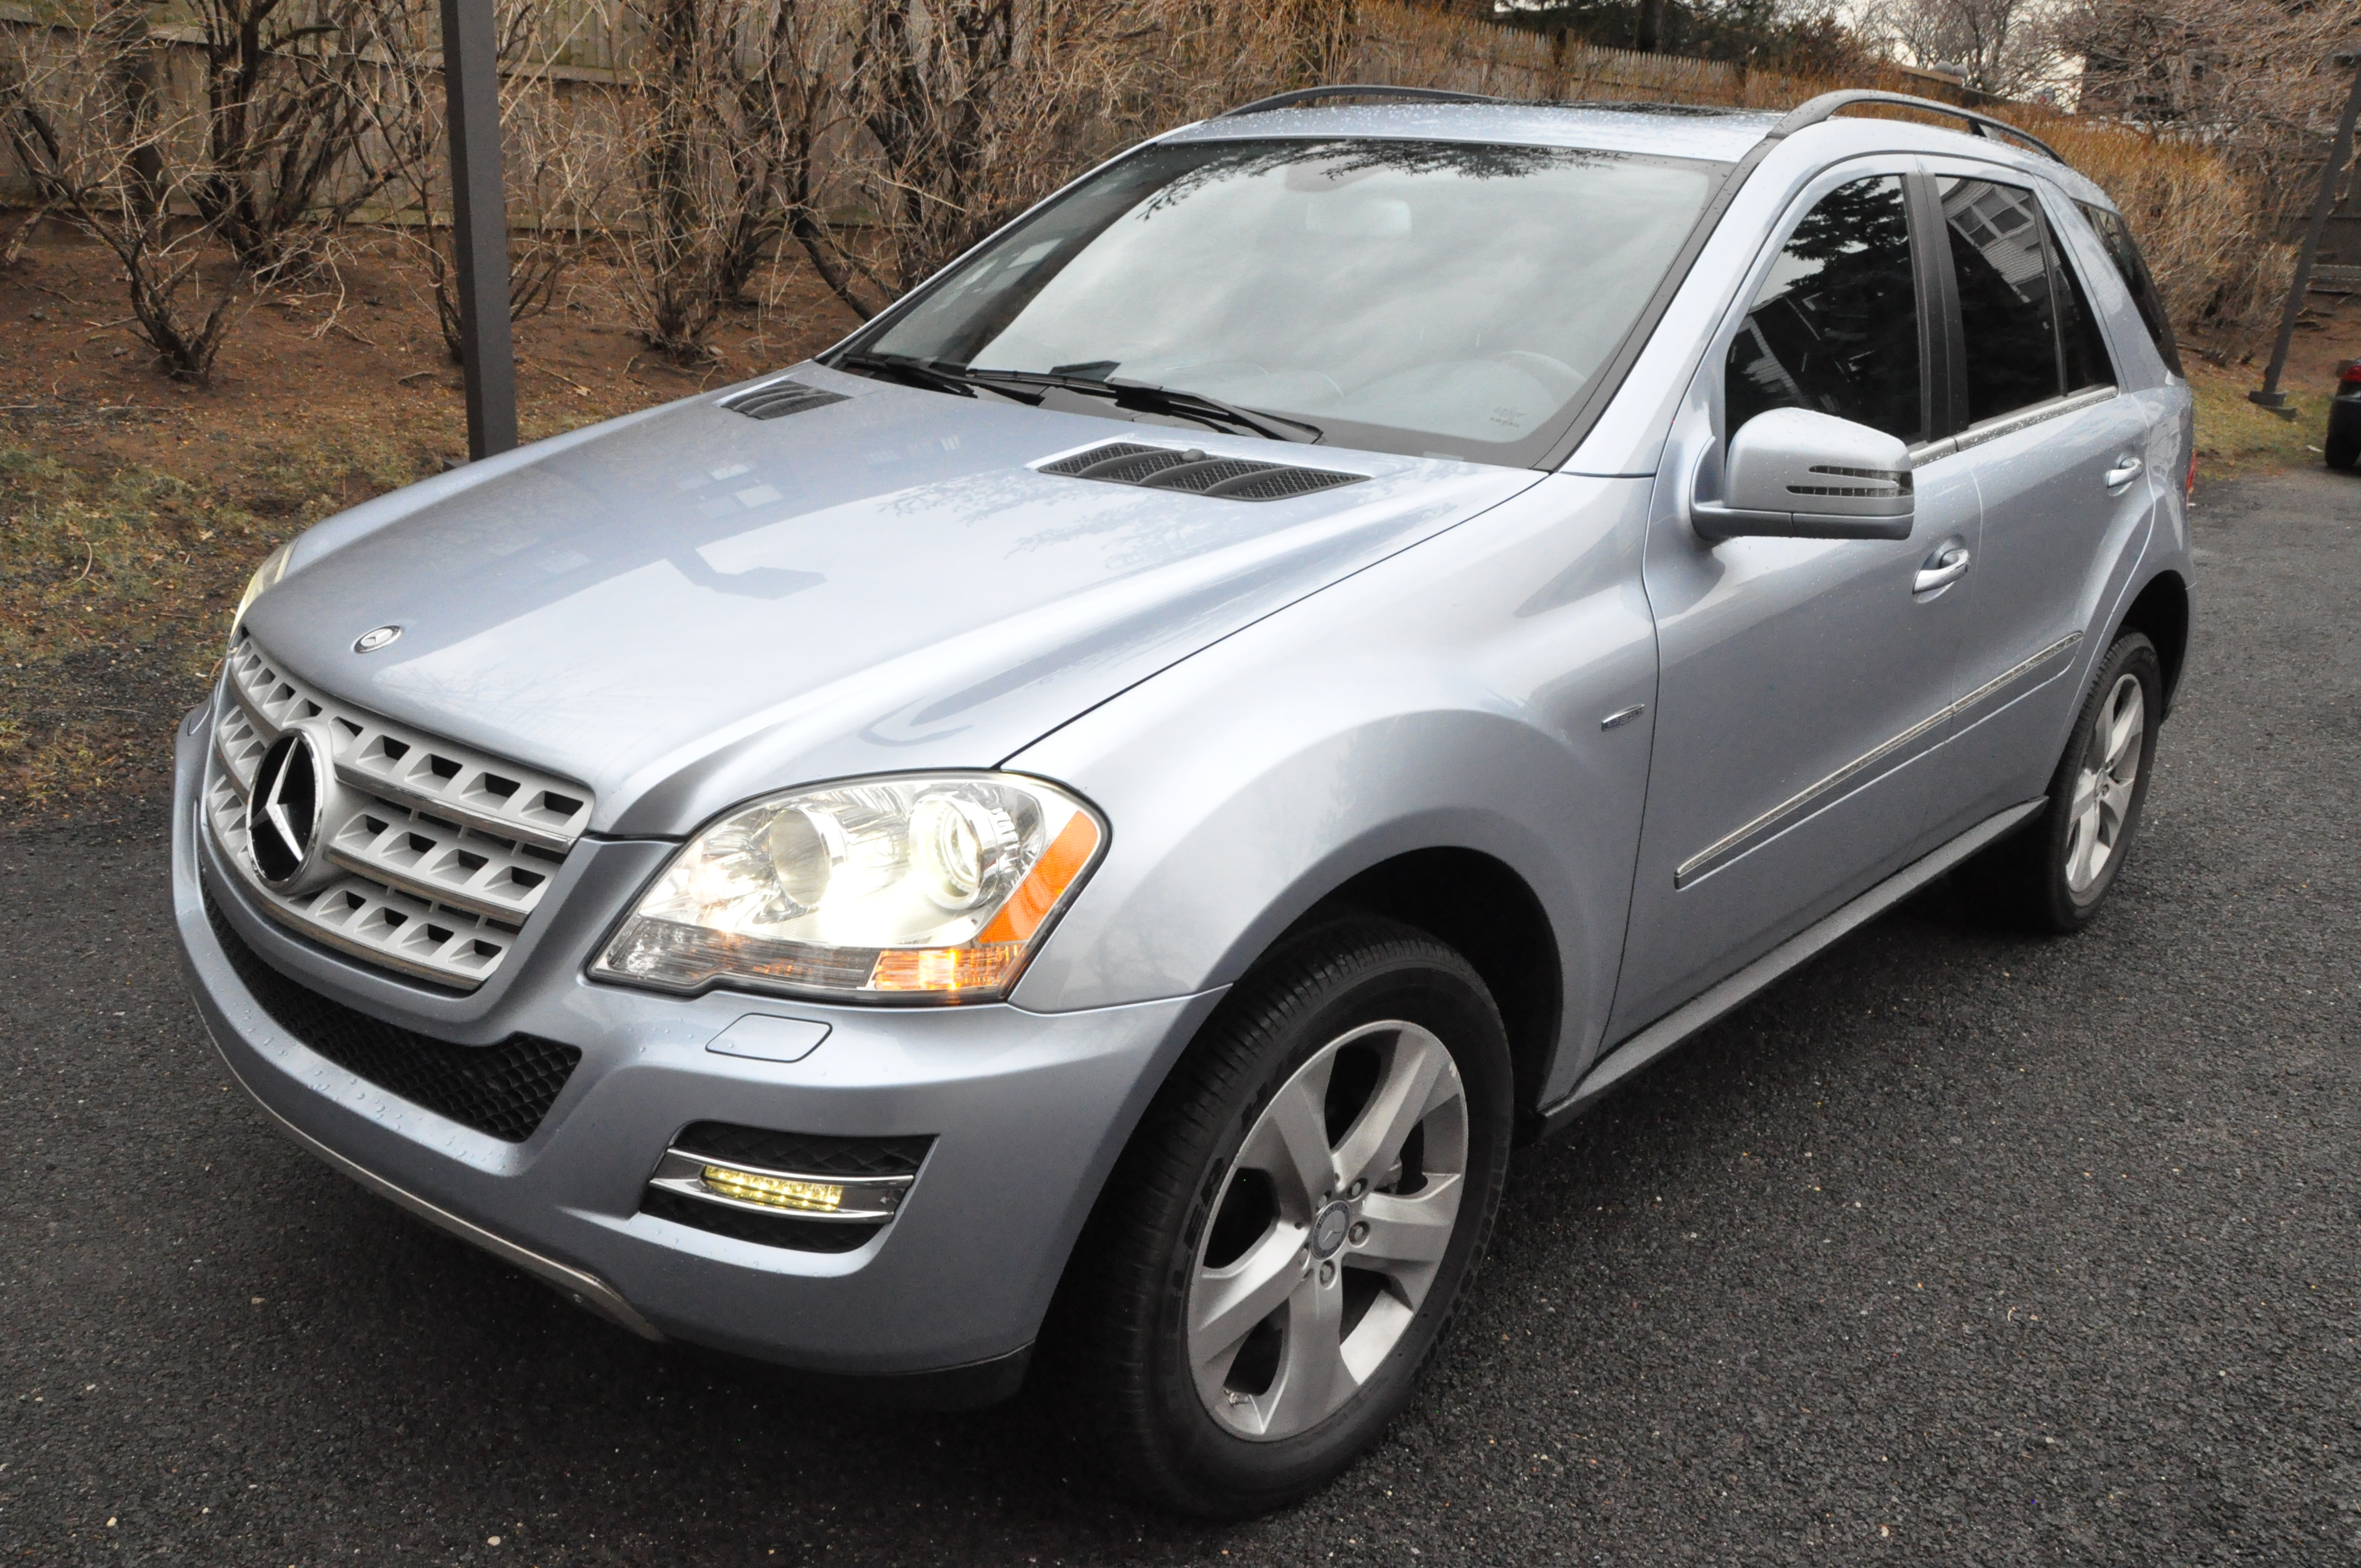 Mercedes benz ml350 bluetec review and test drive the for Mercedes benz ml350 bluetec review